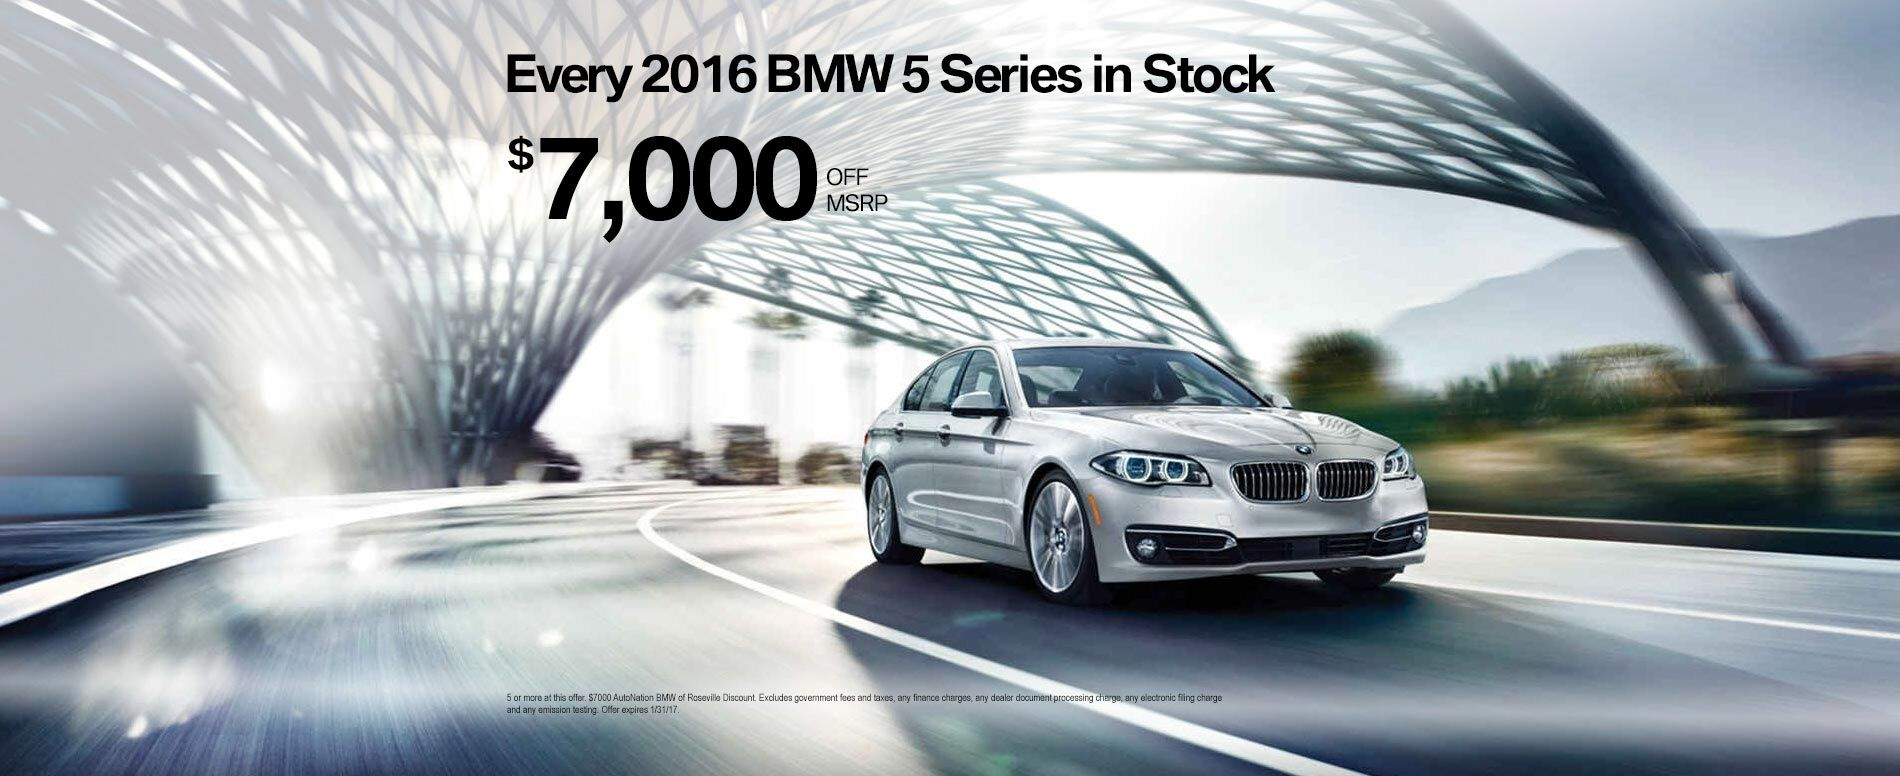 BMW Dealership Roseville CA Used Cars BMW of Roseville